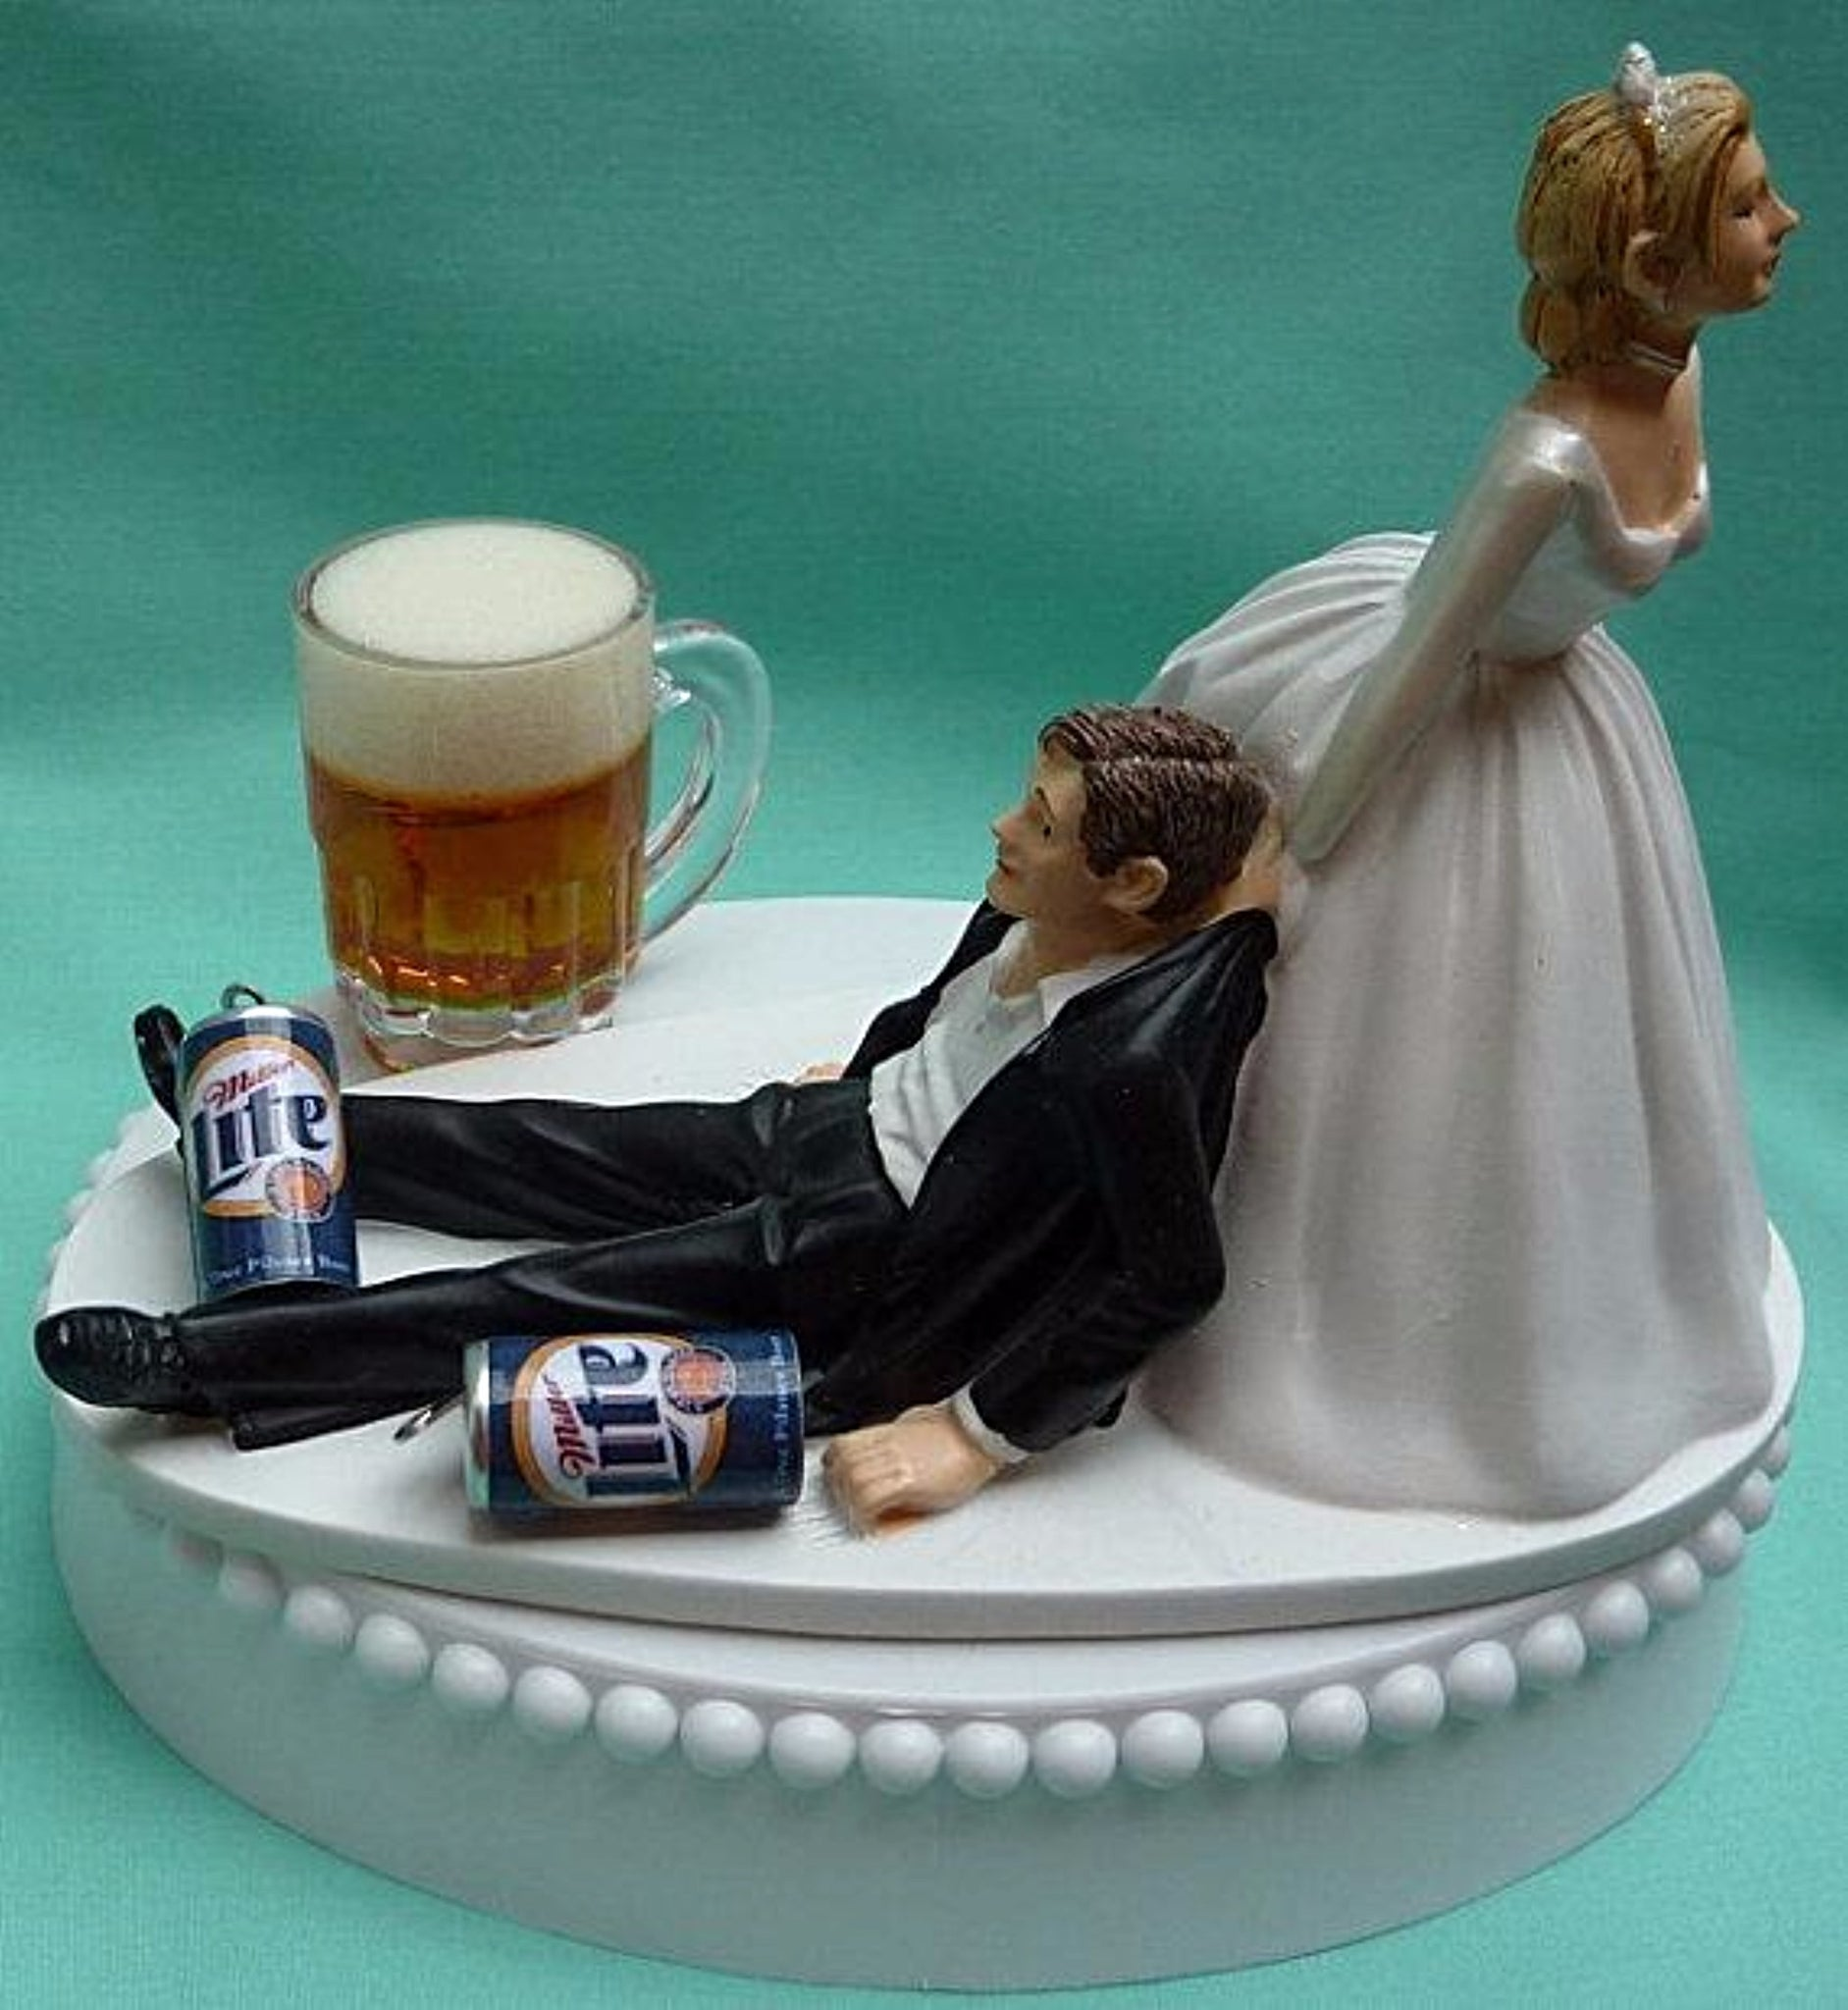 Miller Lite beer wedding cake topper groom's cake top Fun Wedding Things drinking cans mug humorous reception bride groom